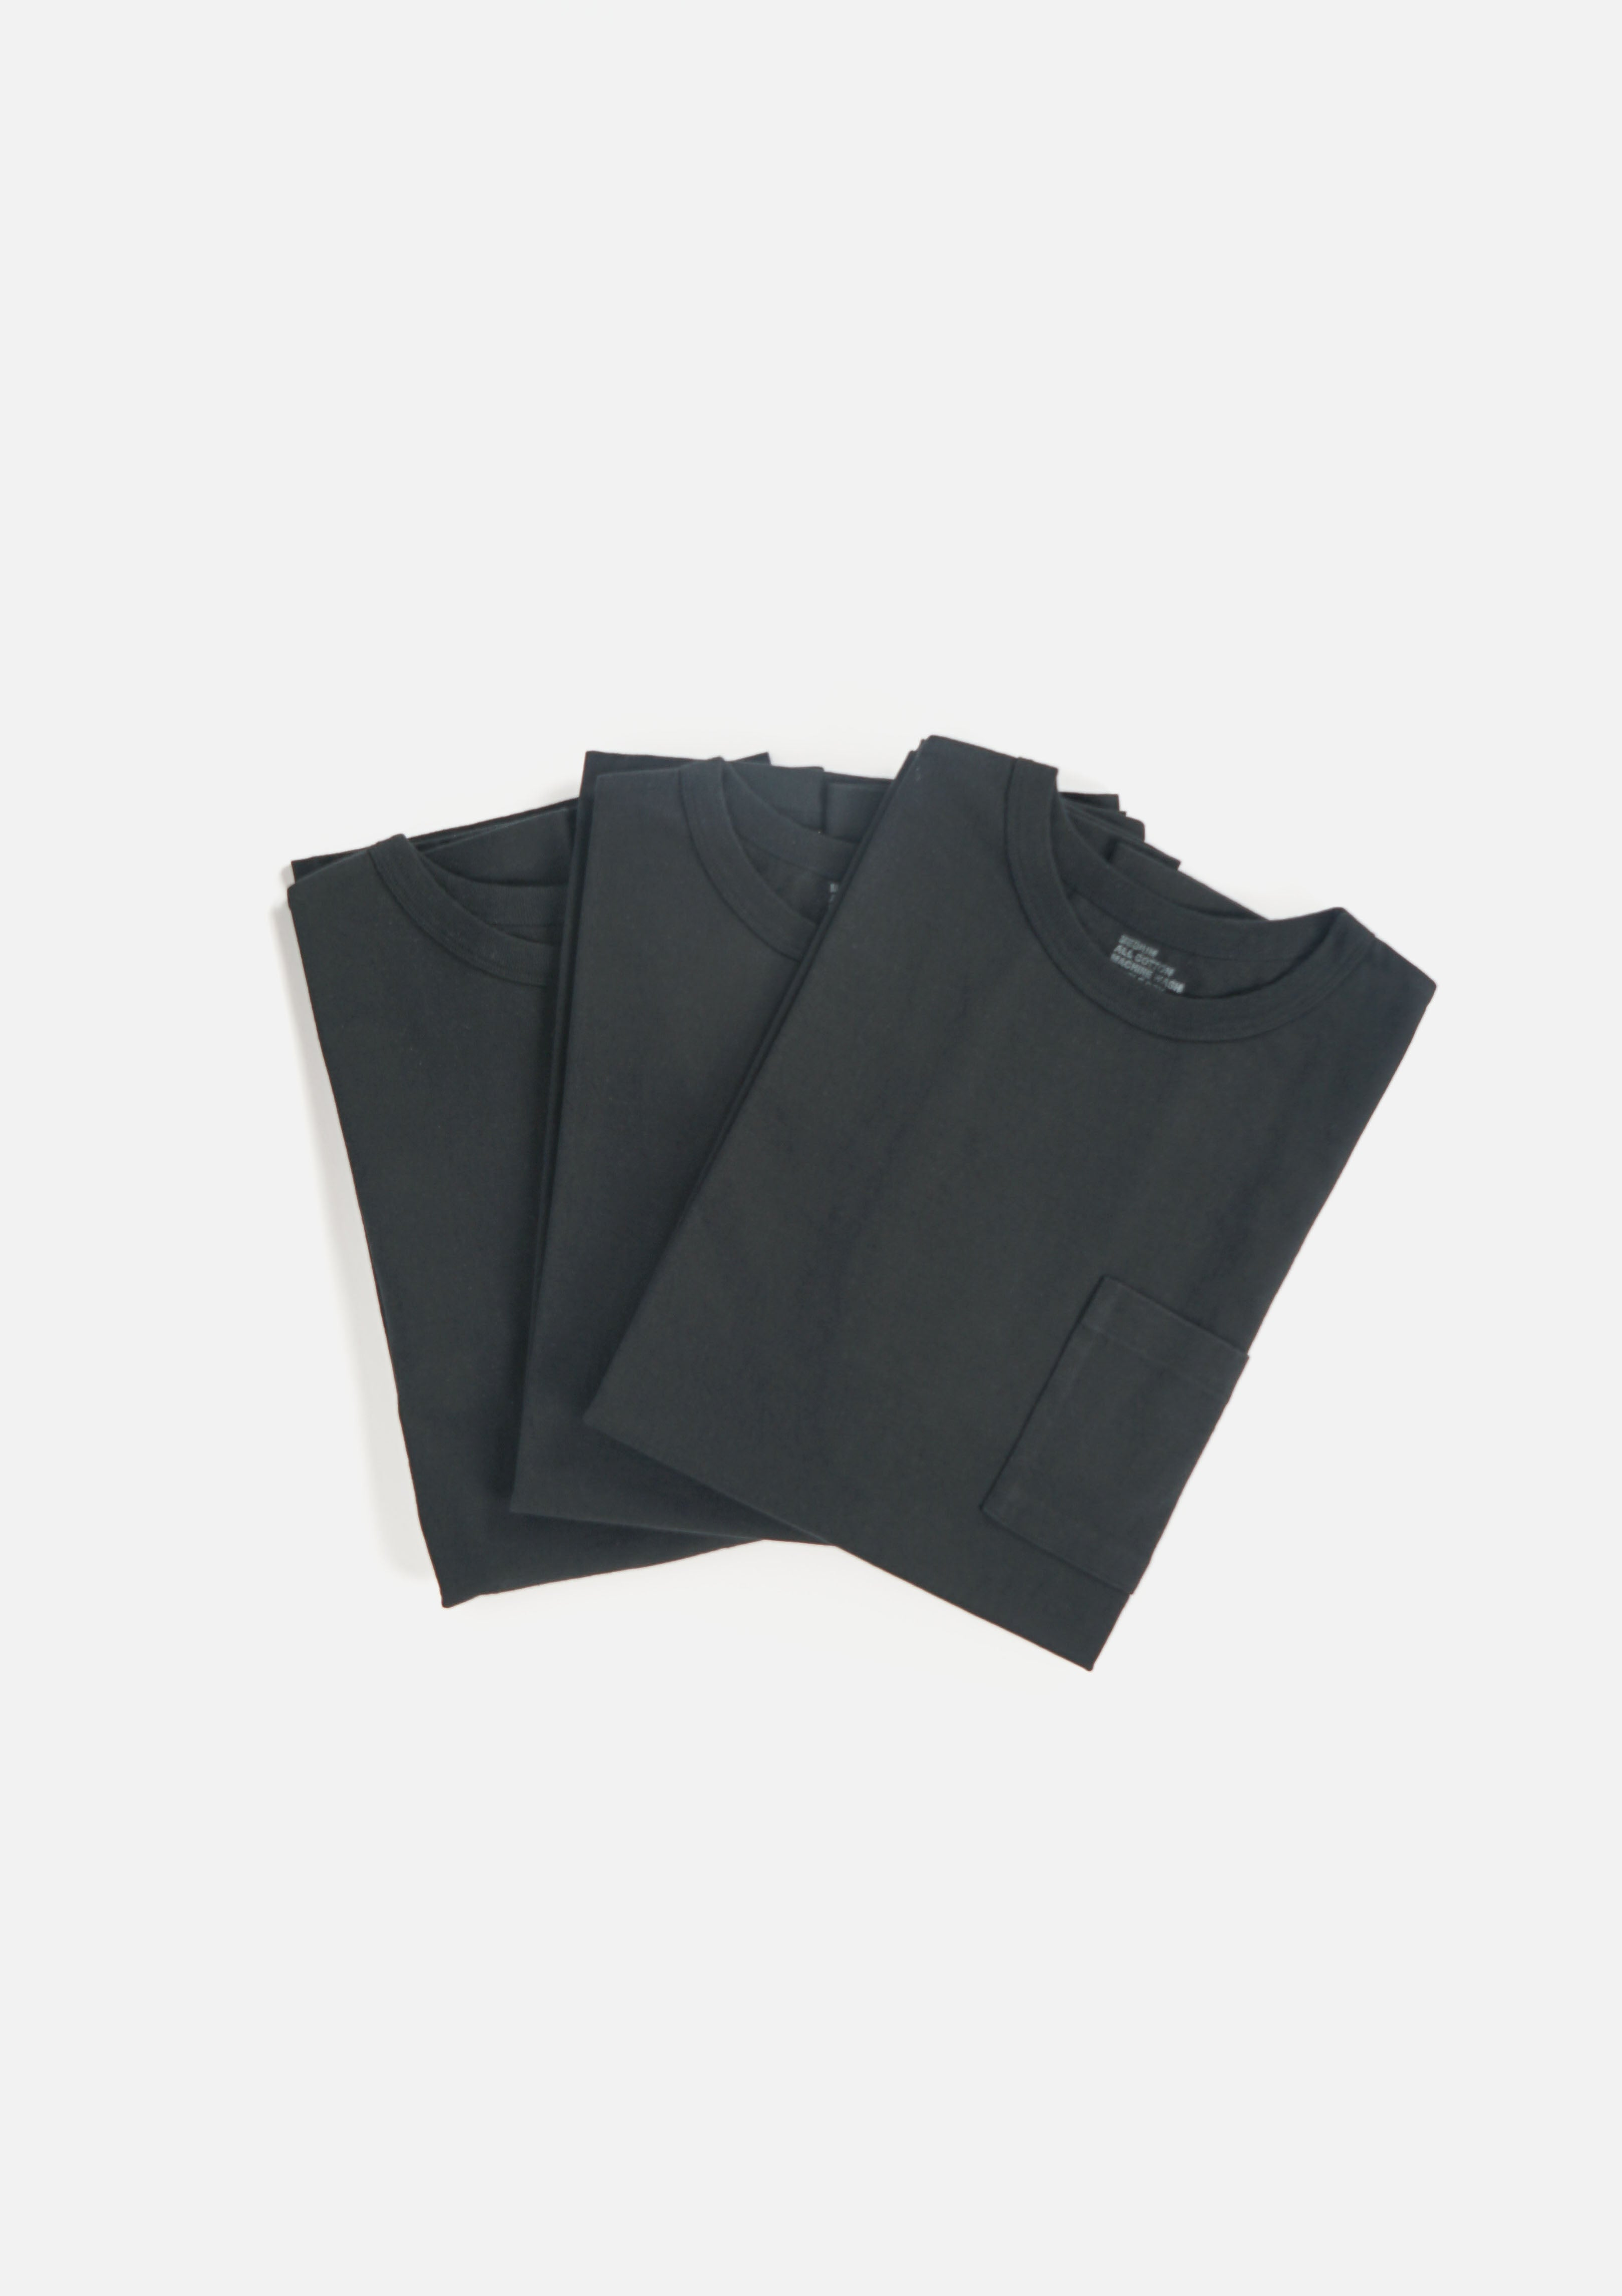 3-Pack Heavyweight Pocket T-shirts Black (You Save 10%)